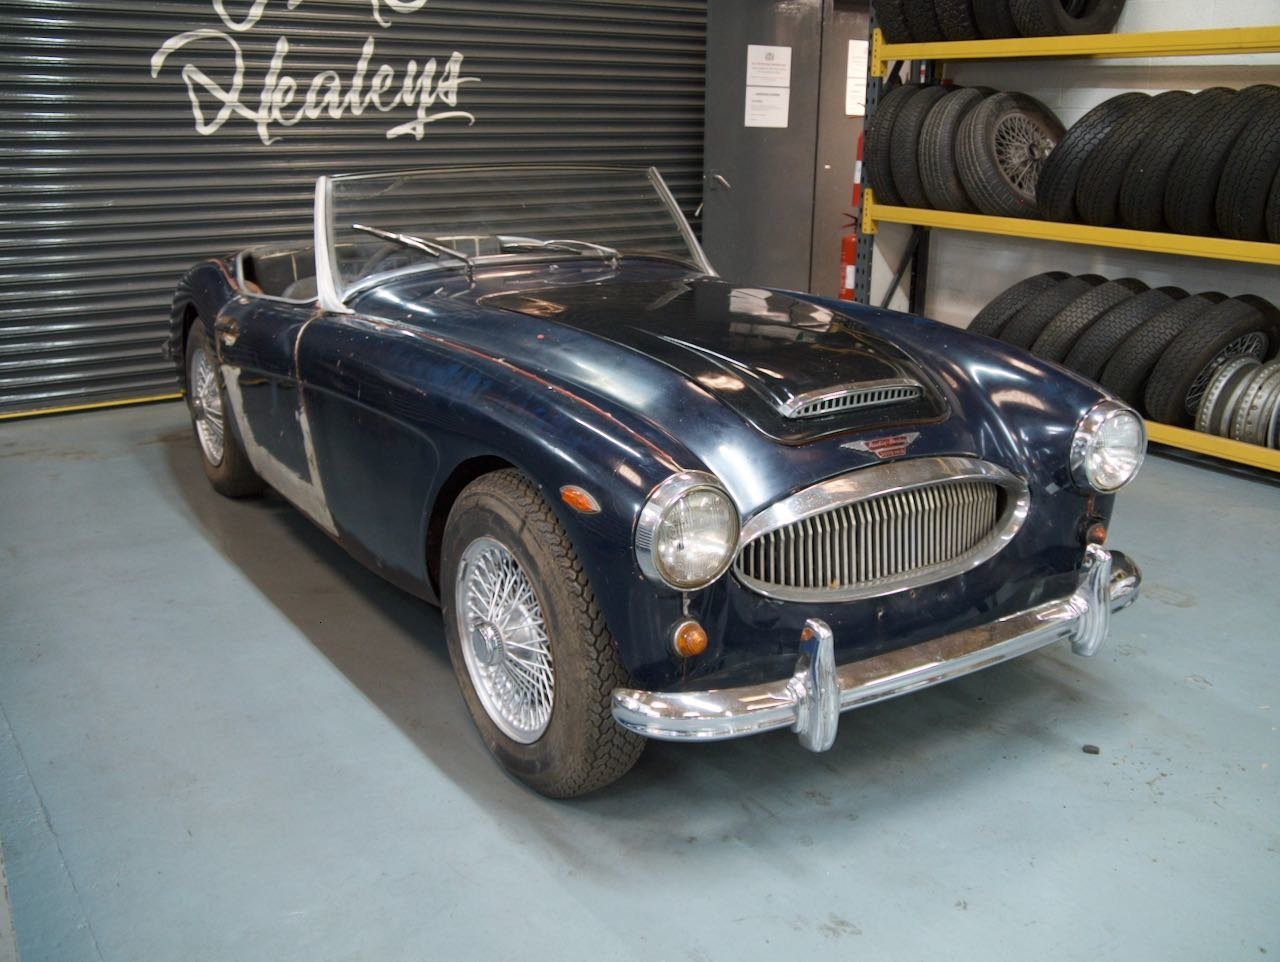 1961 Austin Healey 3000 MKII BT7 UK RHD Restoration Project For Sale (picture 3 of 6)